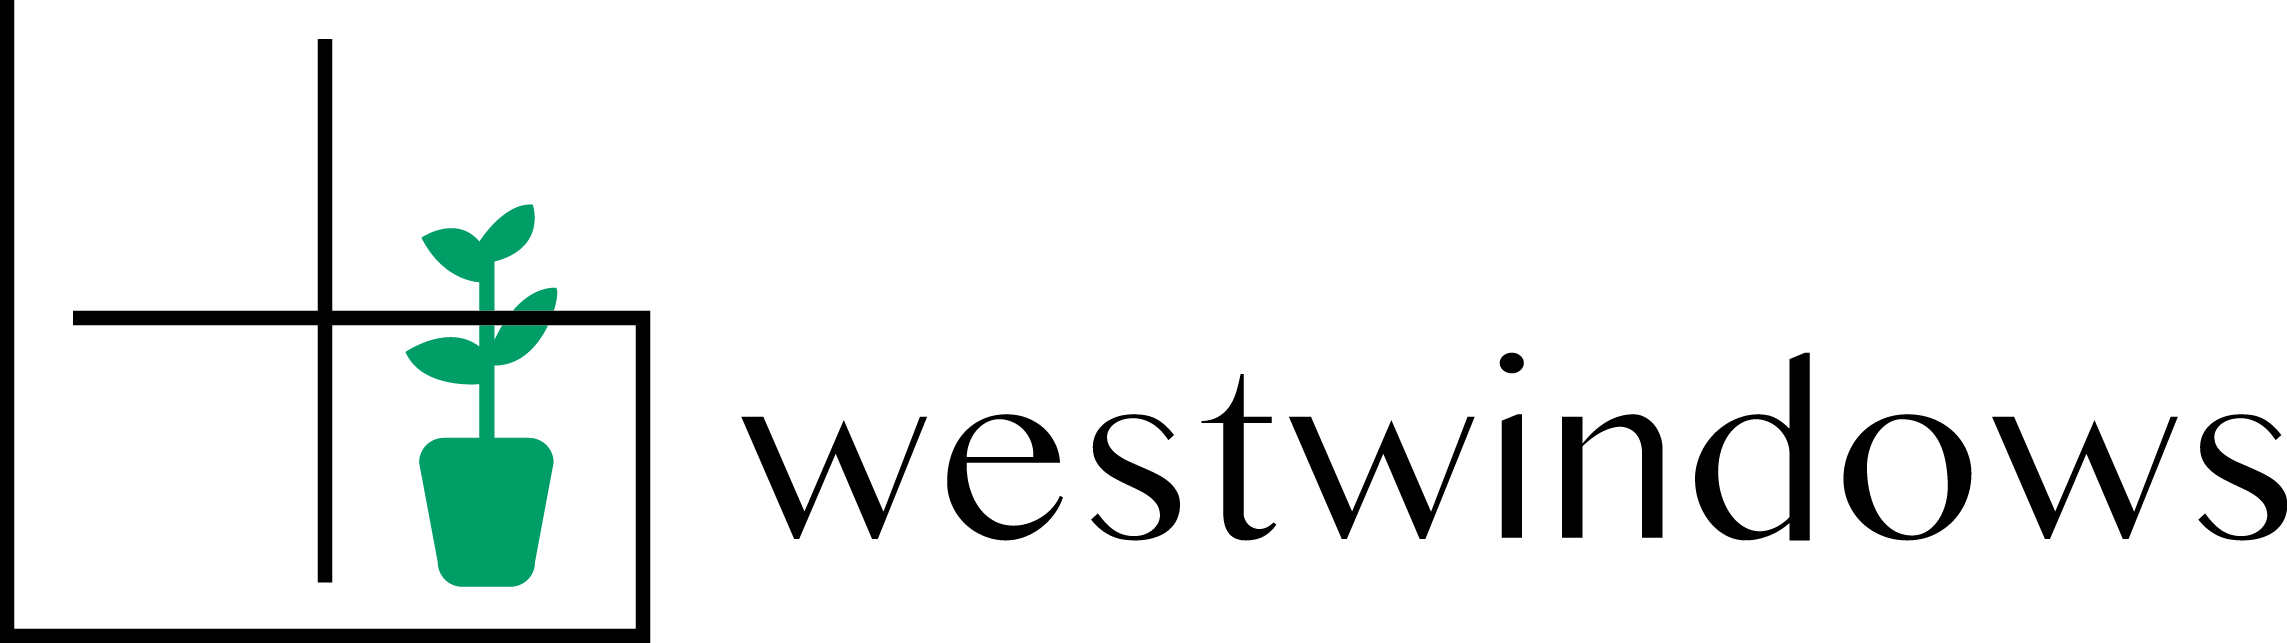 westwindows Logo